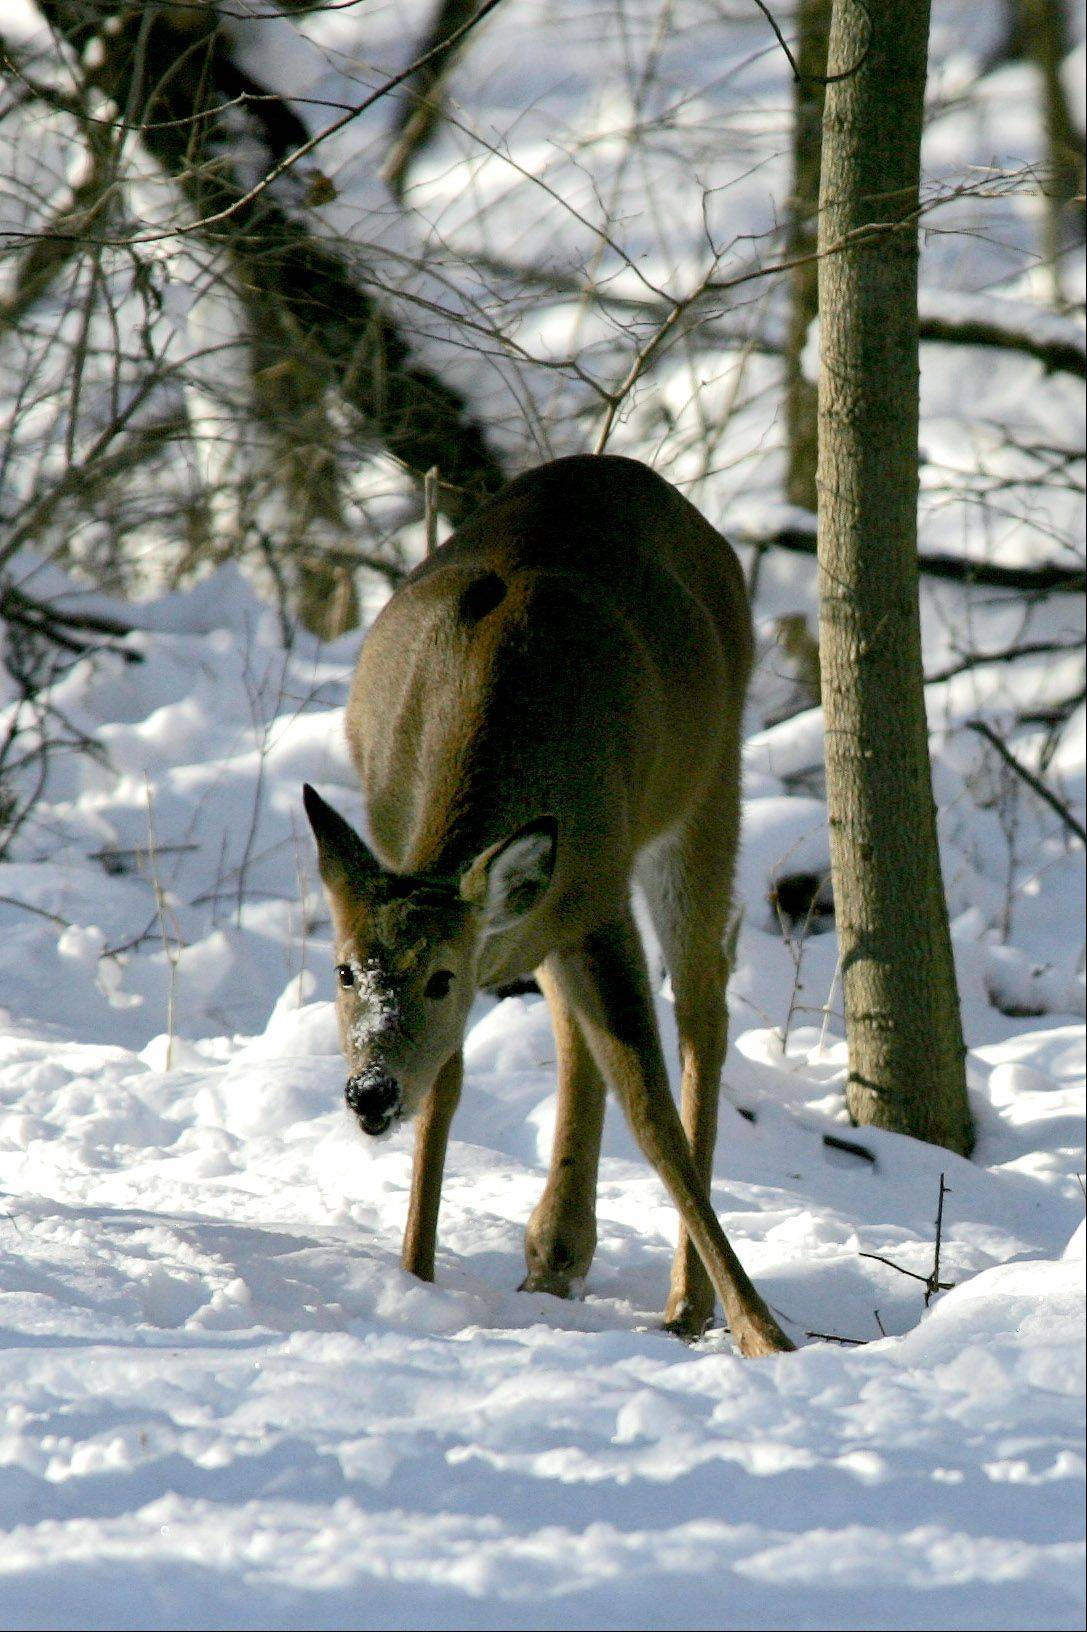 DuPage County Forest Preserve officials say they will closely monitor the deer population to ensure a recent case of chronic wasting disease was an isolated incident.